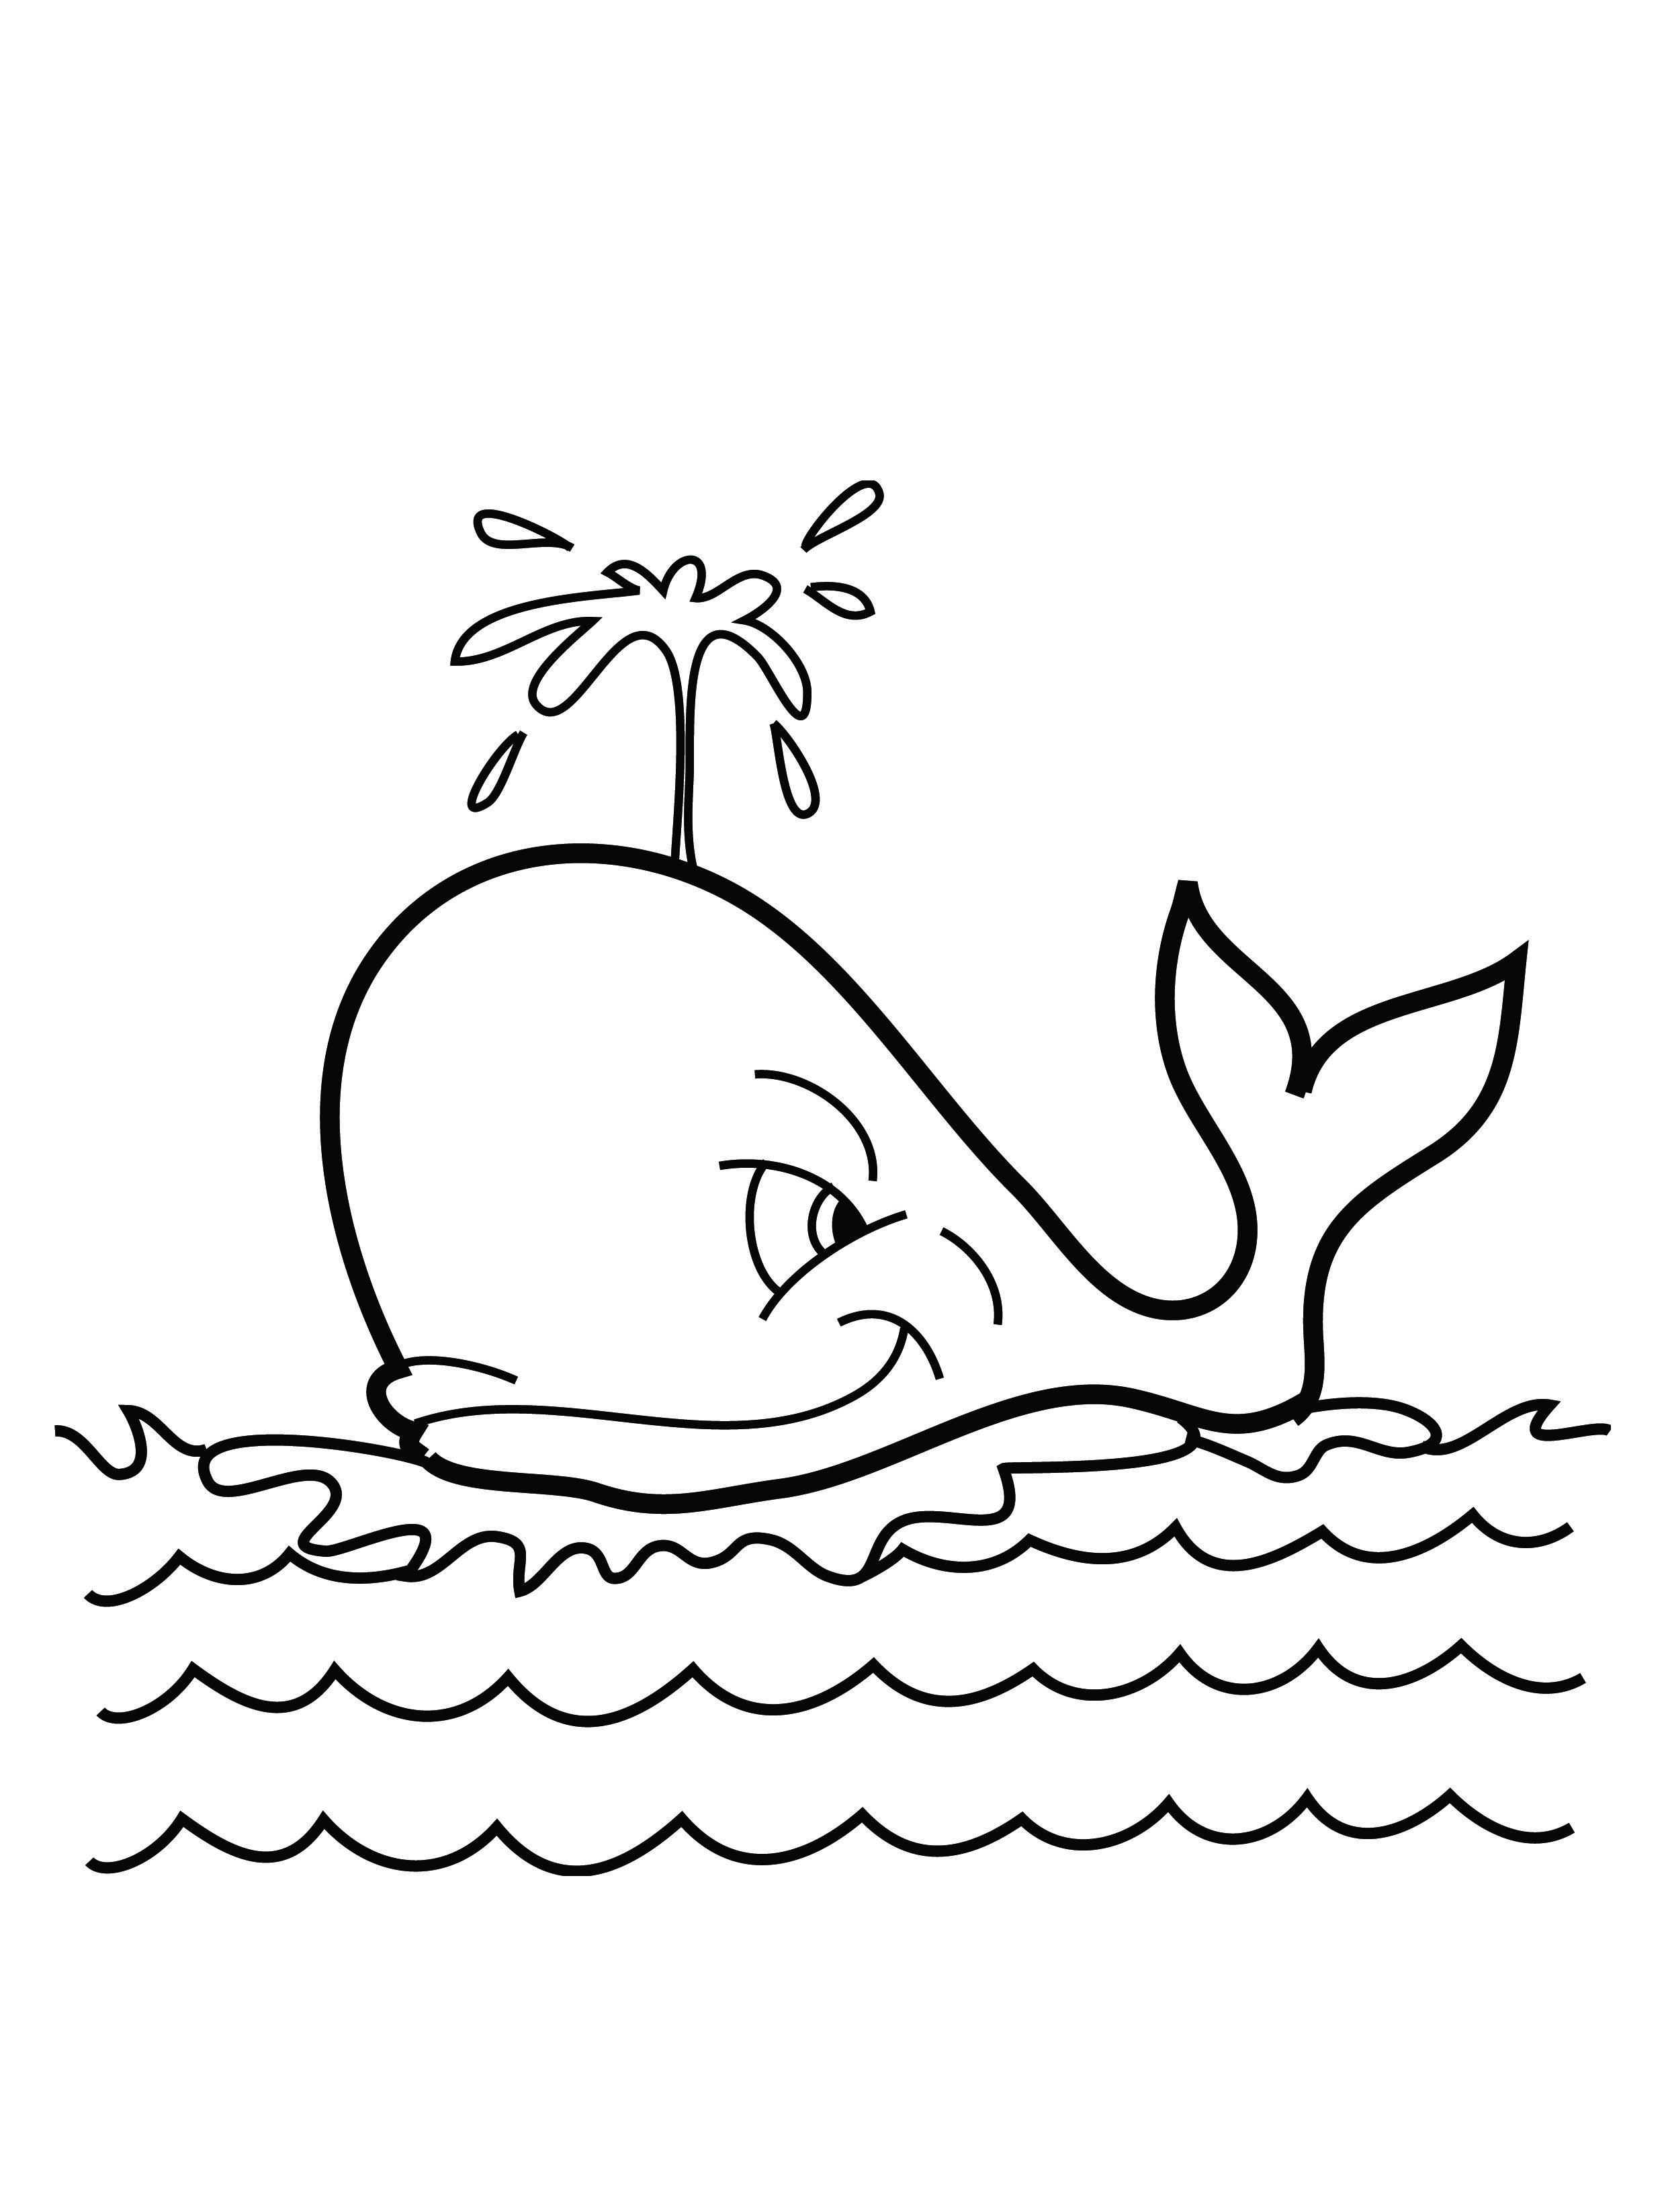 Cute Whale Drawing At Getdrawings